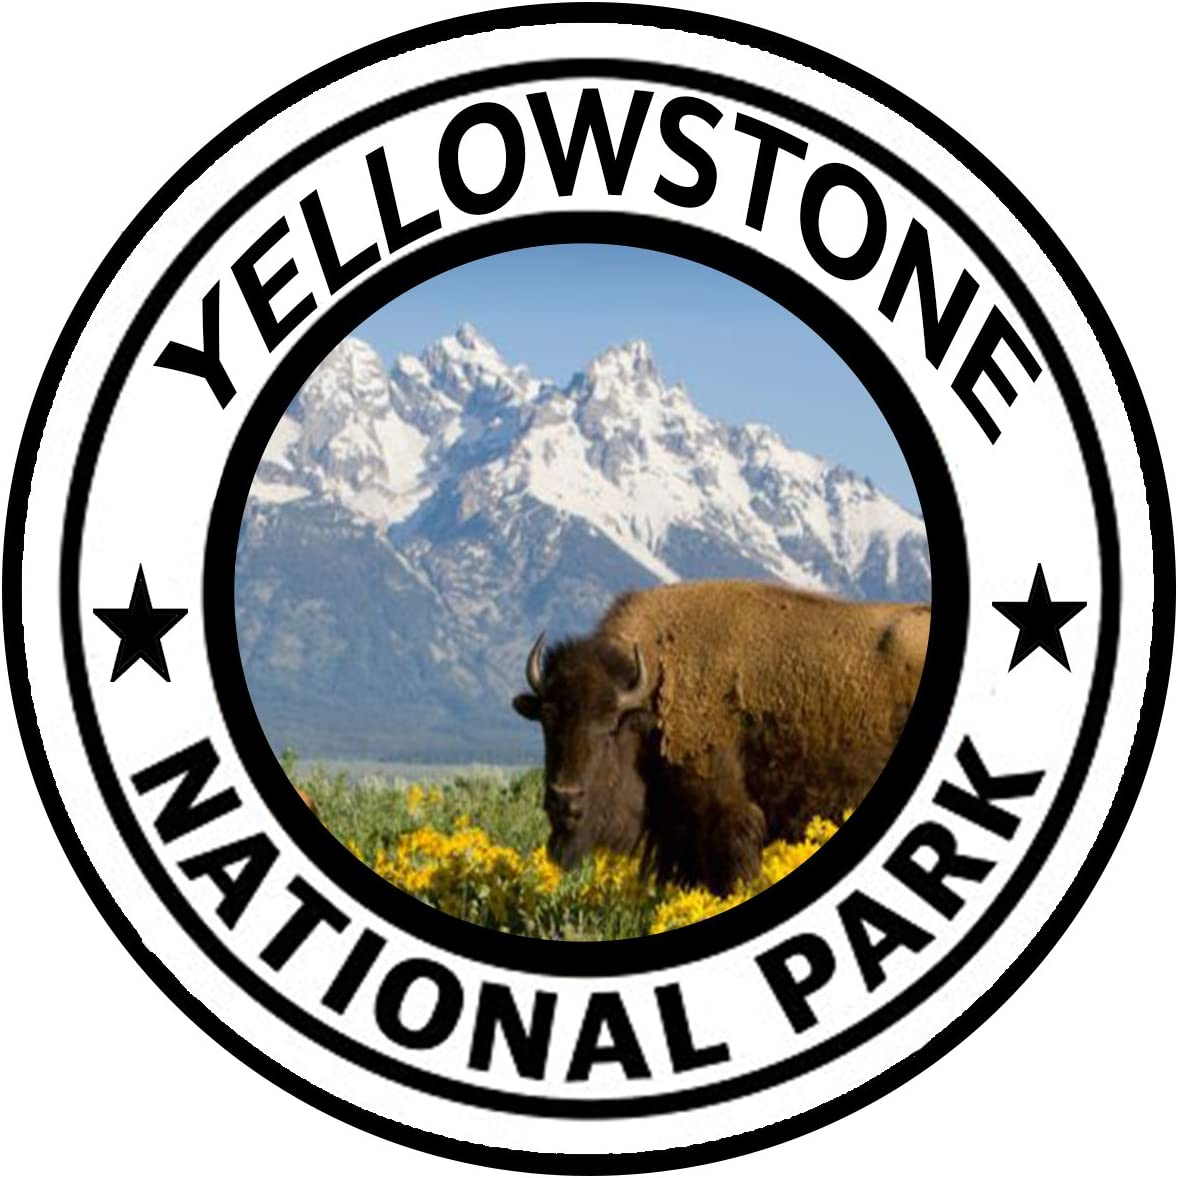 Rogue River Tactical Yellowstone National Park Sticker 5 Round Car Auto Decal